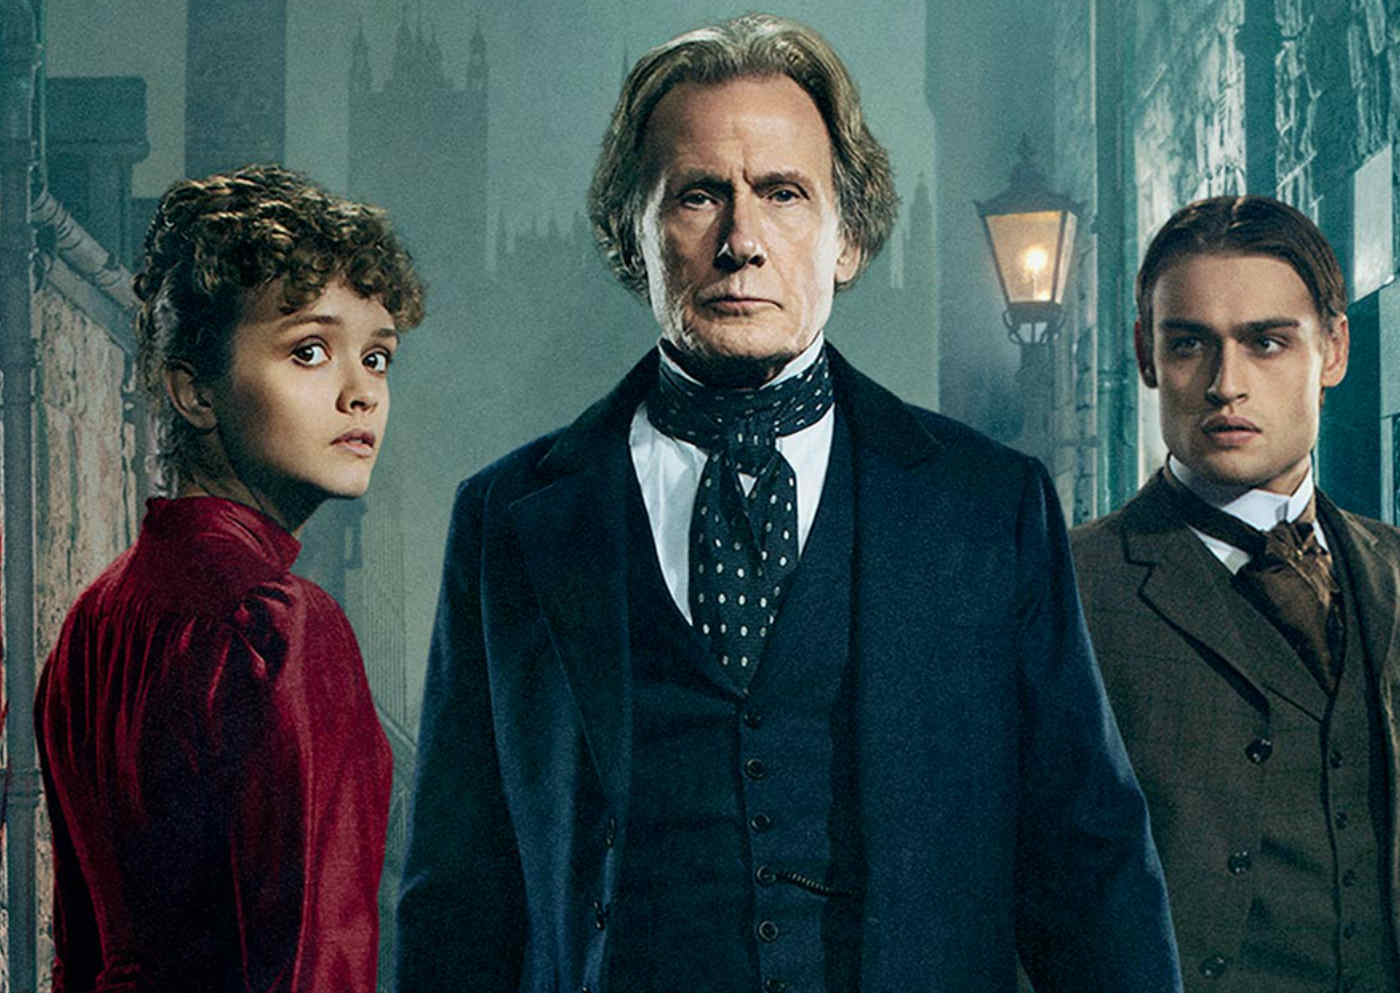 Review: The Limehouse Golem is Less Whodunit, more Whocares?